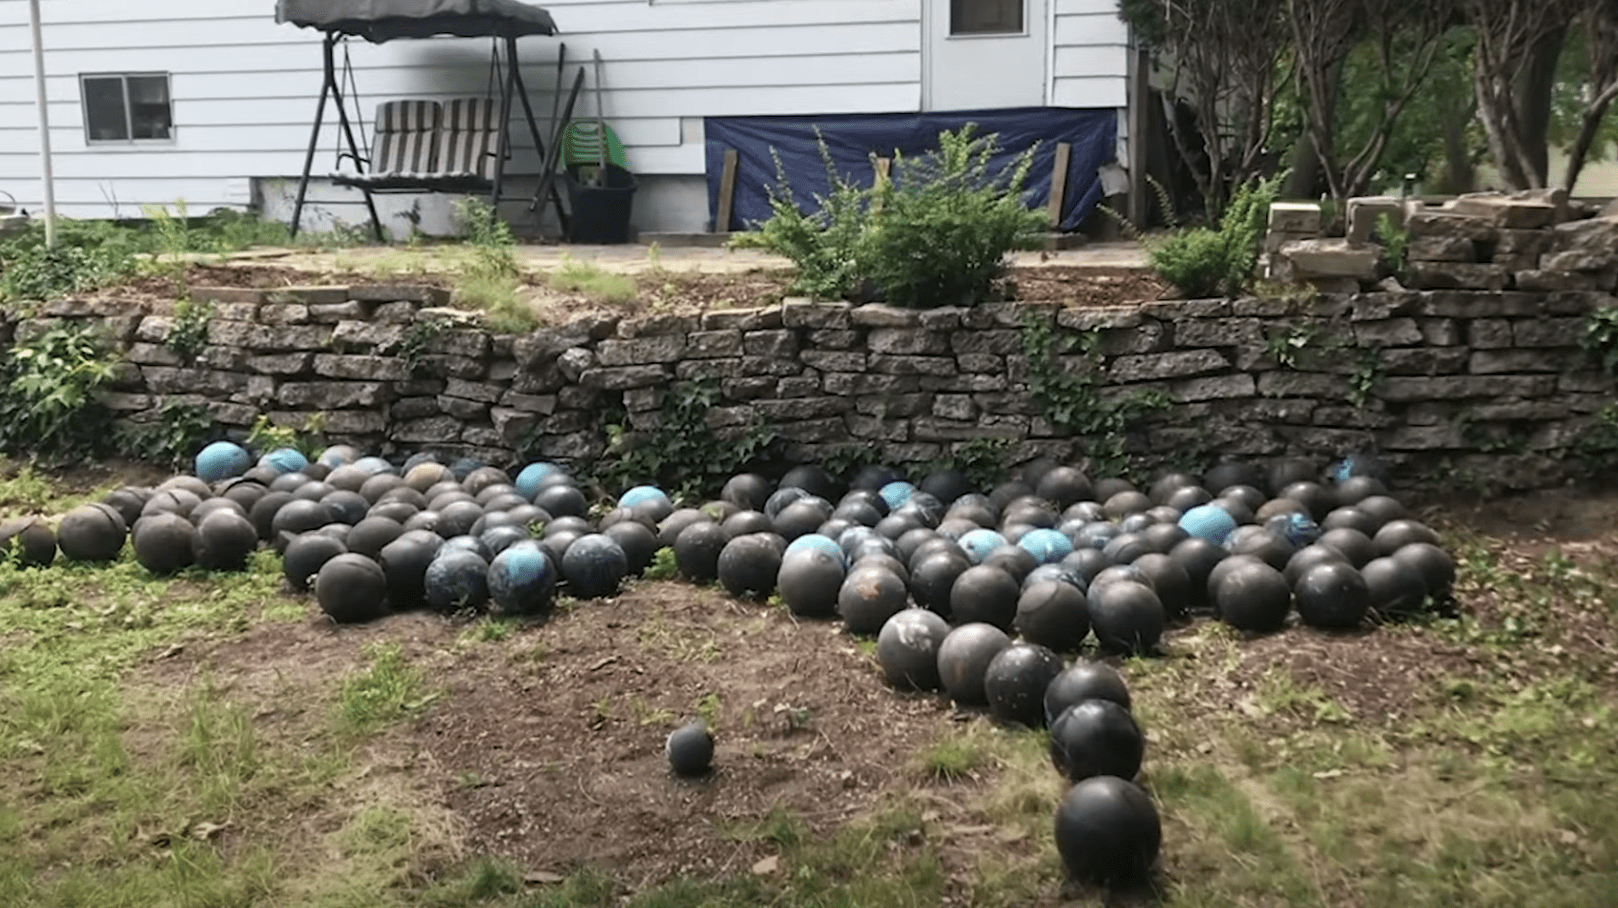 Bowling bowls found under a man's house | Photo: Youtube/mlive